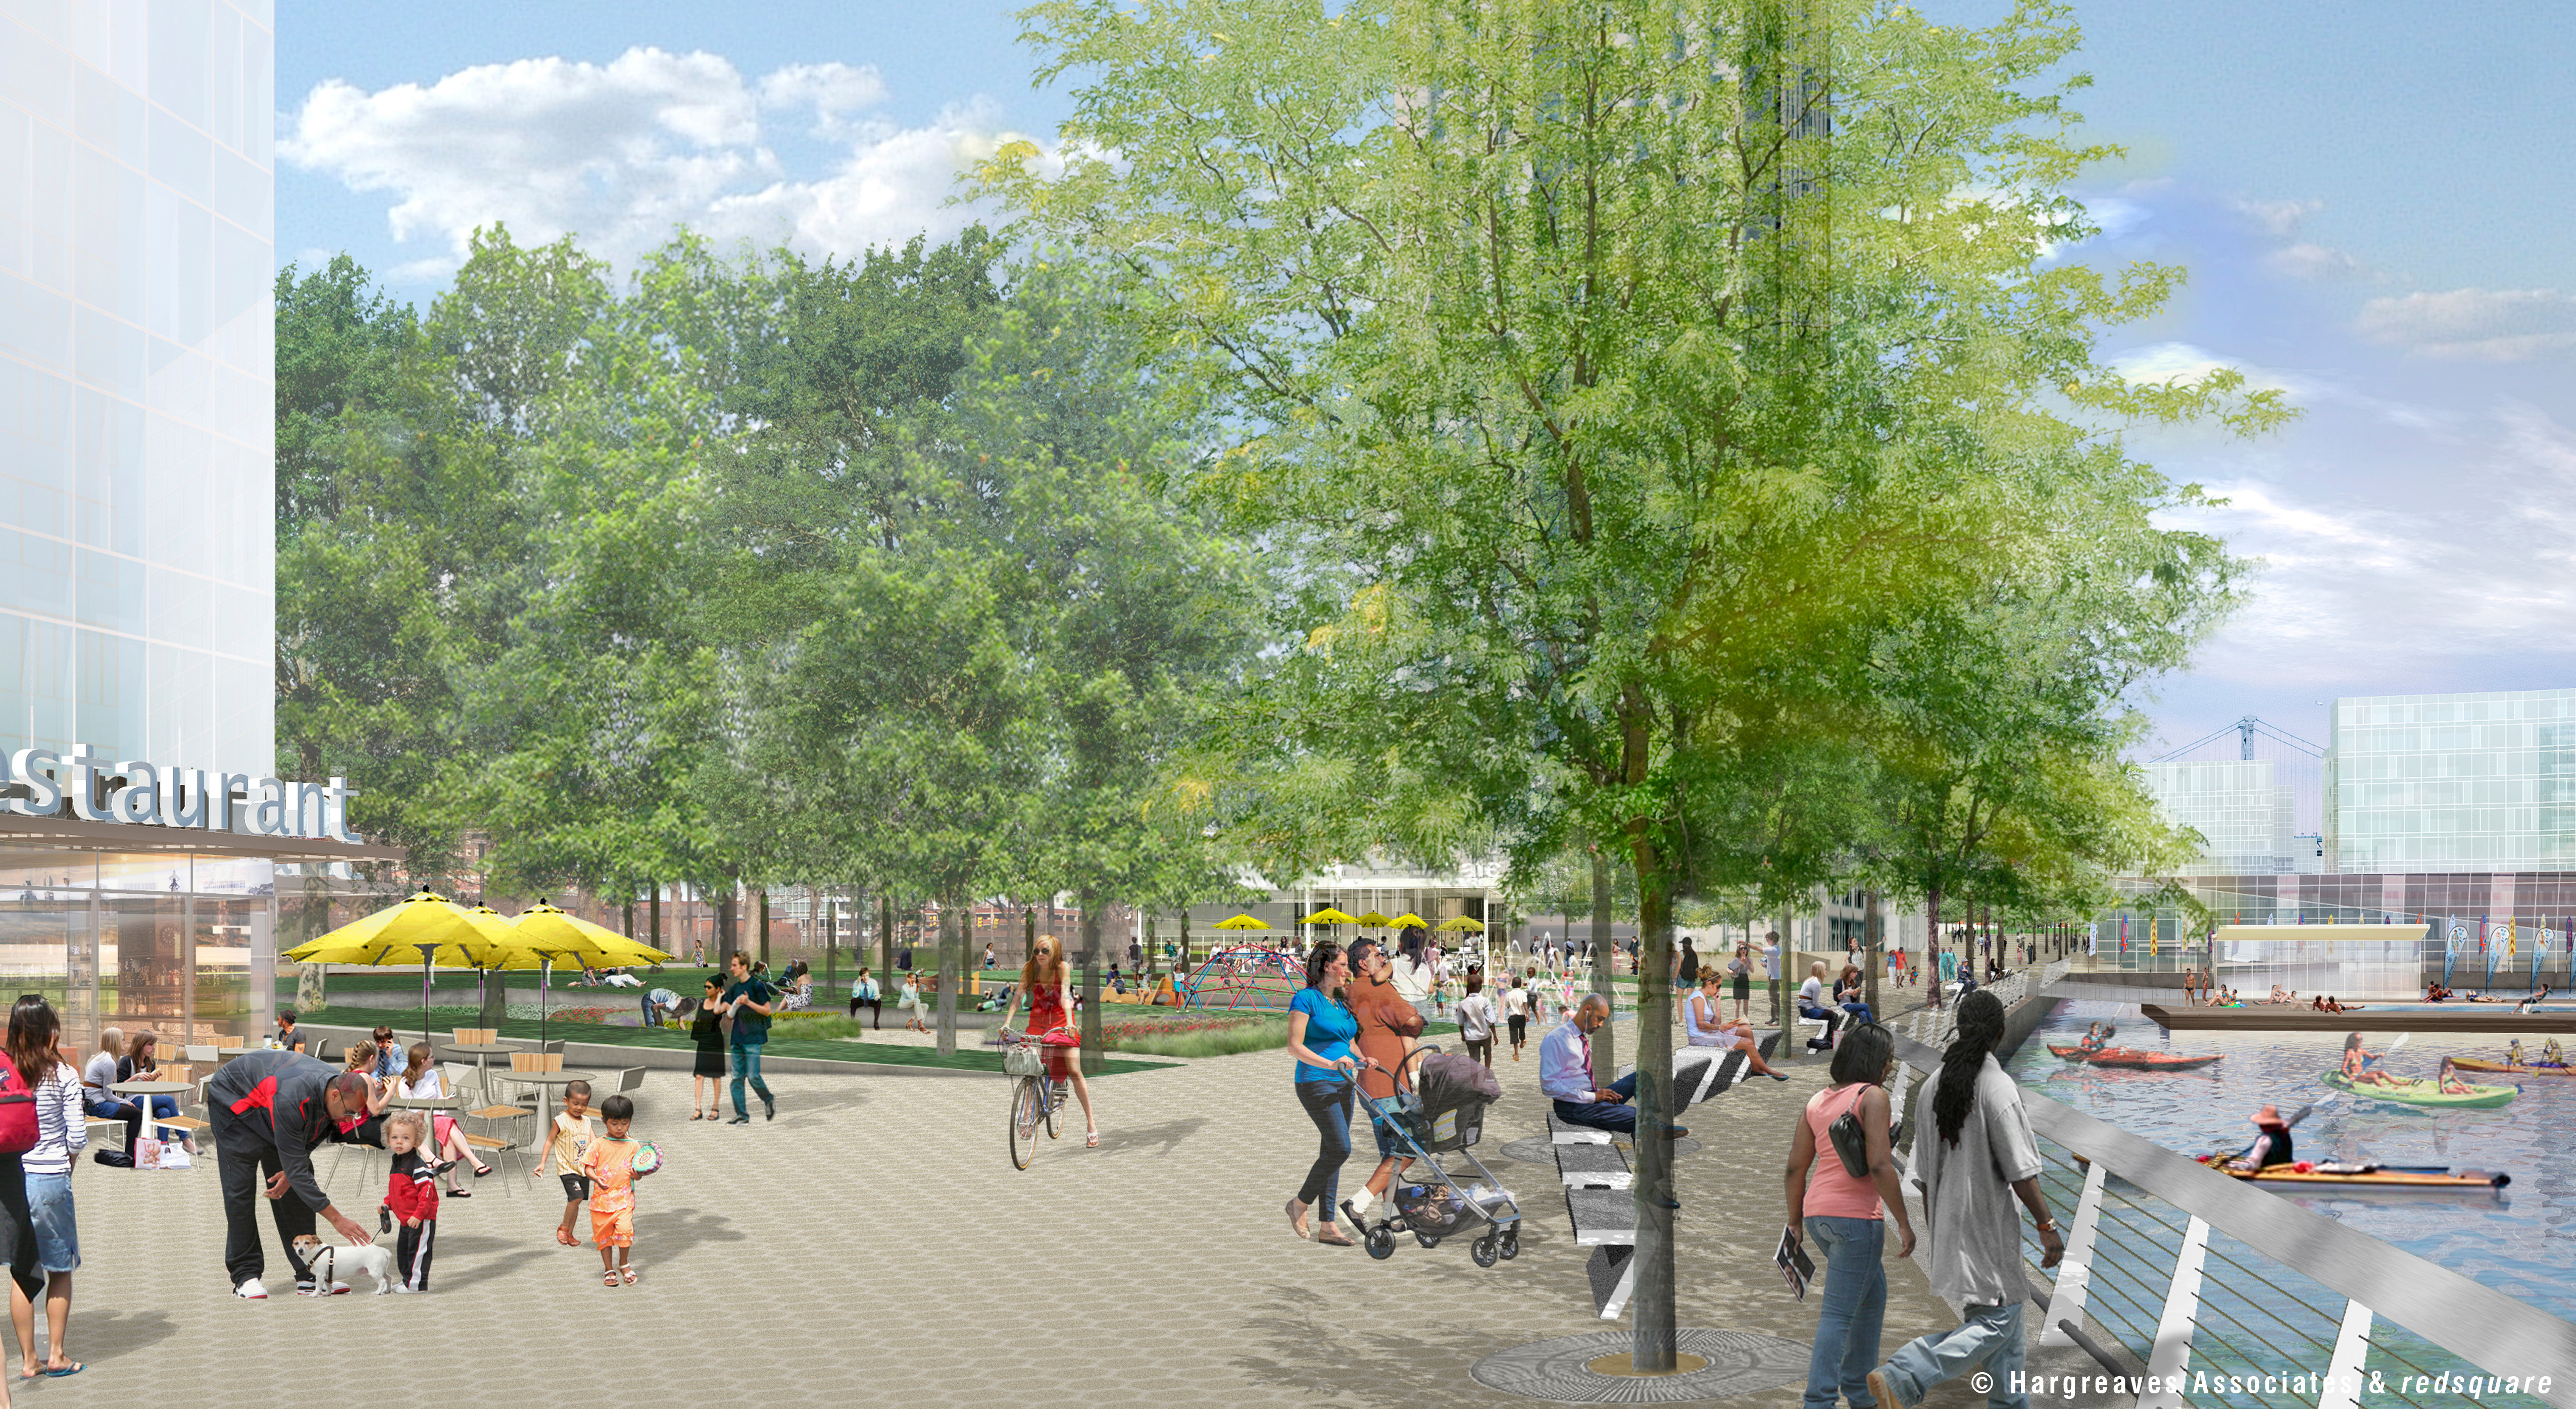 Spruce Street Harbor Park Development,© Hargreaves Associates & redsquare